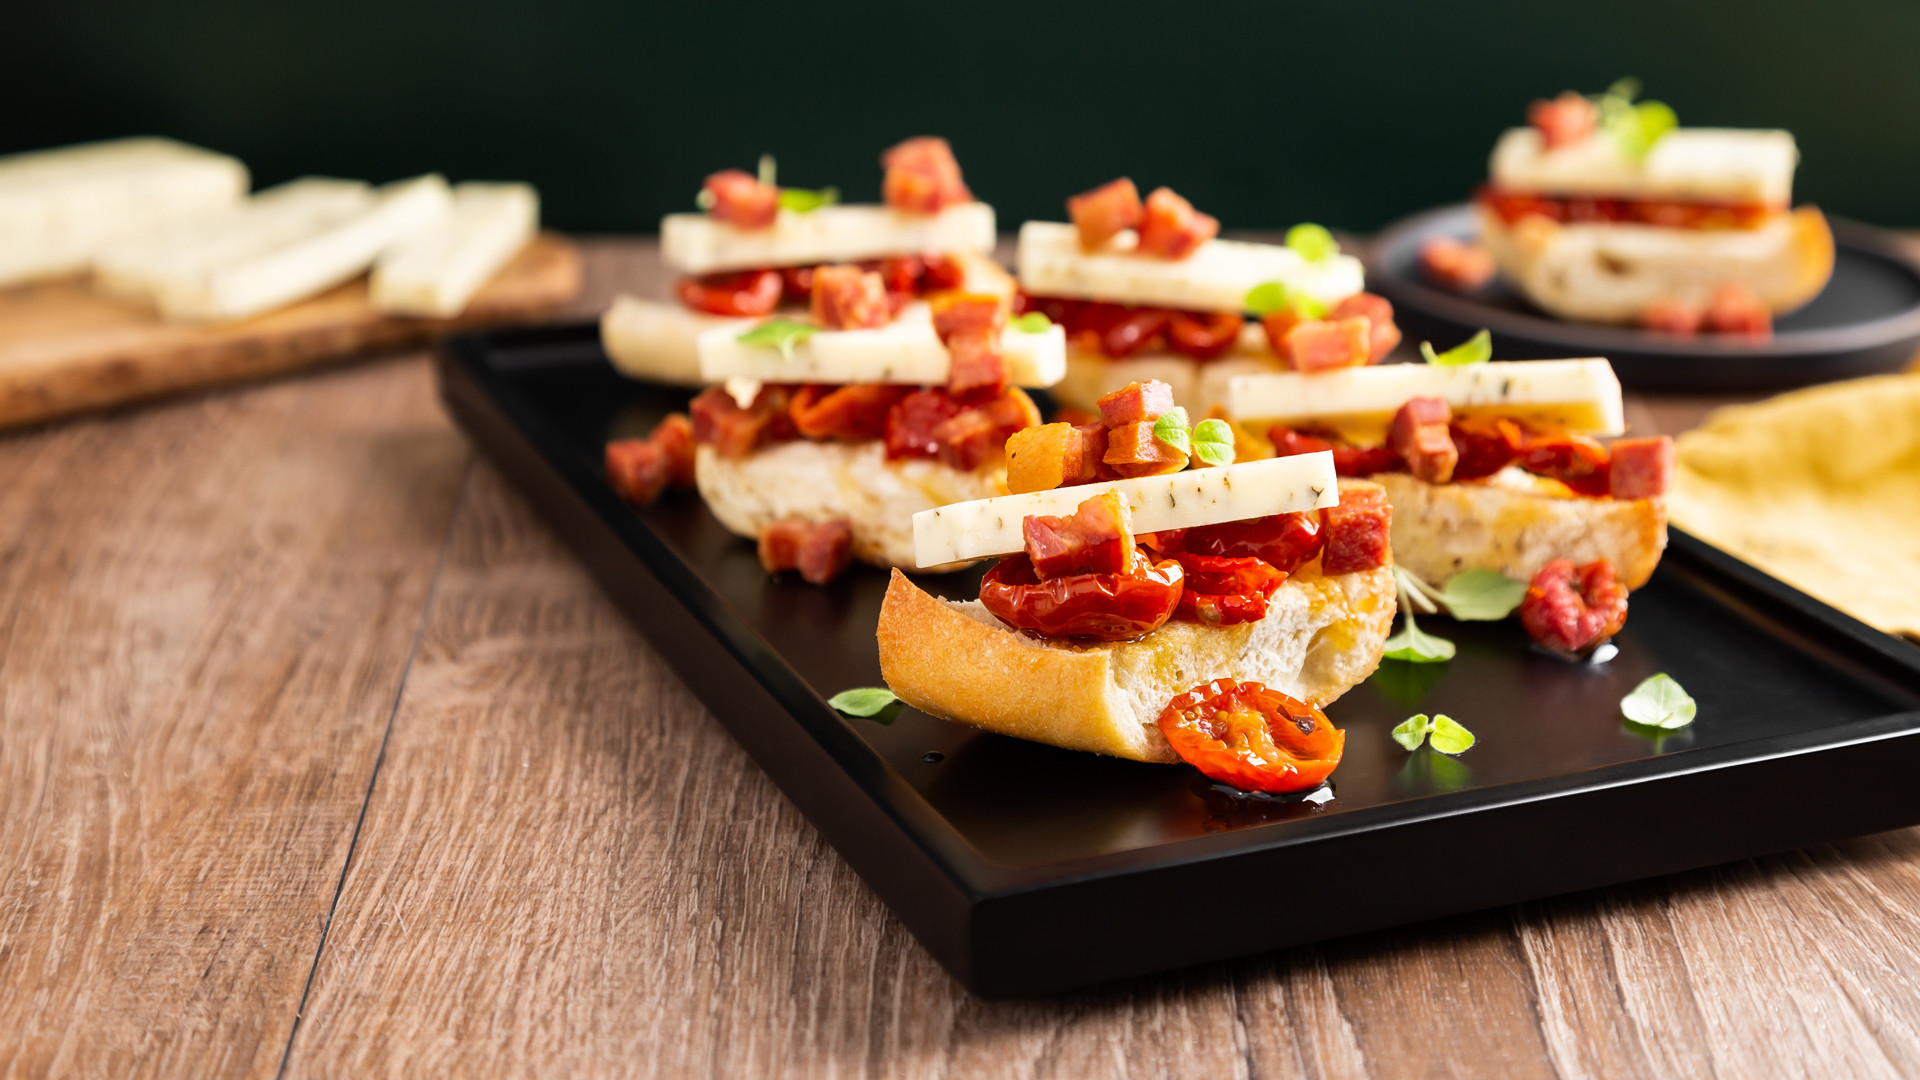 Win a Bothwell Cheese Sunny Dog Barkin' Herb & Cheddar prize pack | Crostinis made with Sunny Dog Barkin' Herb & Cheddar